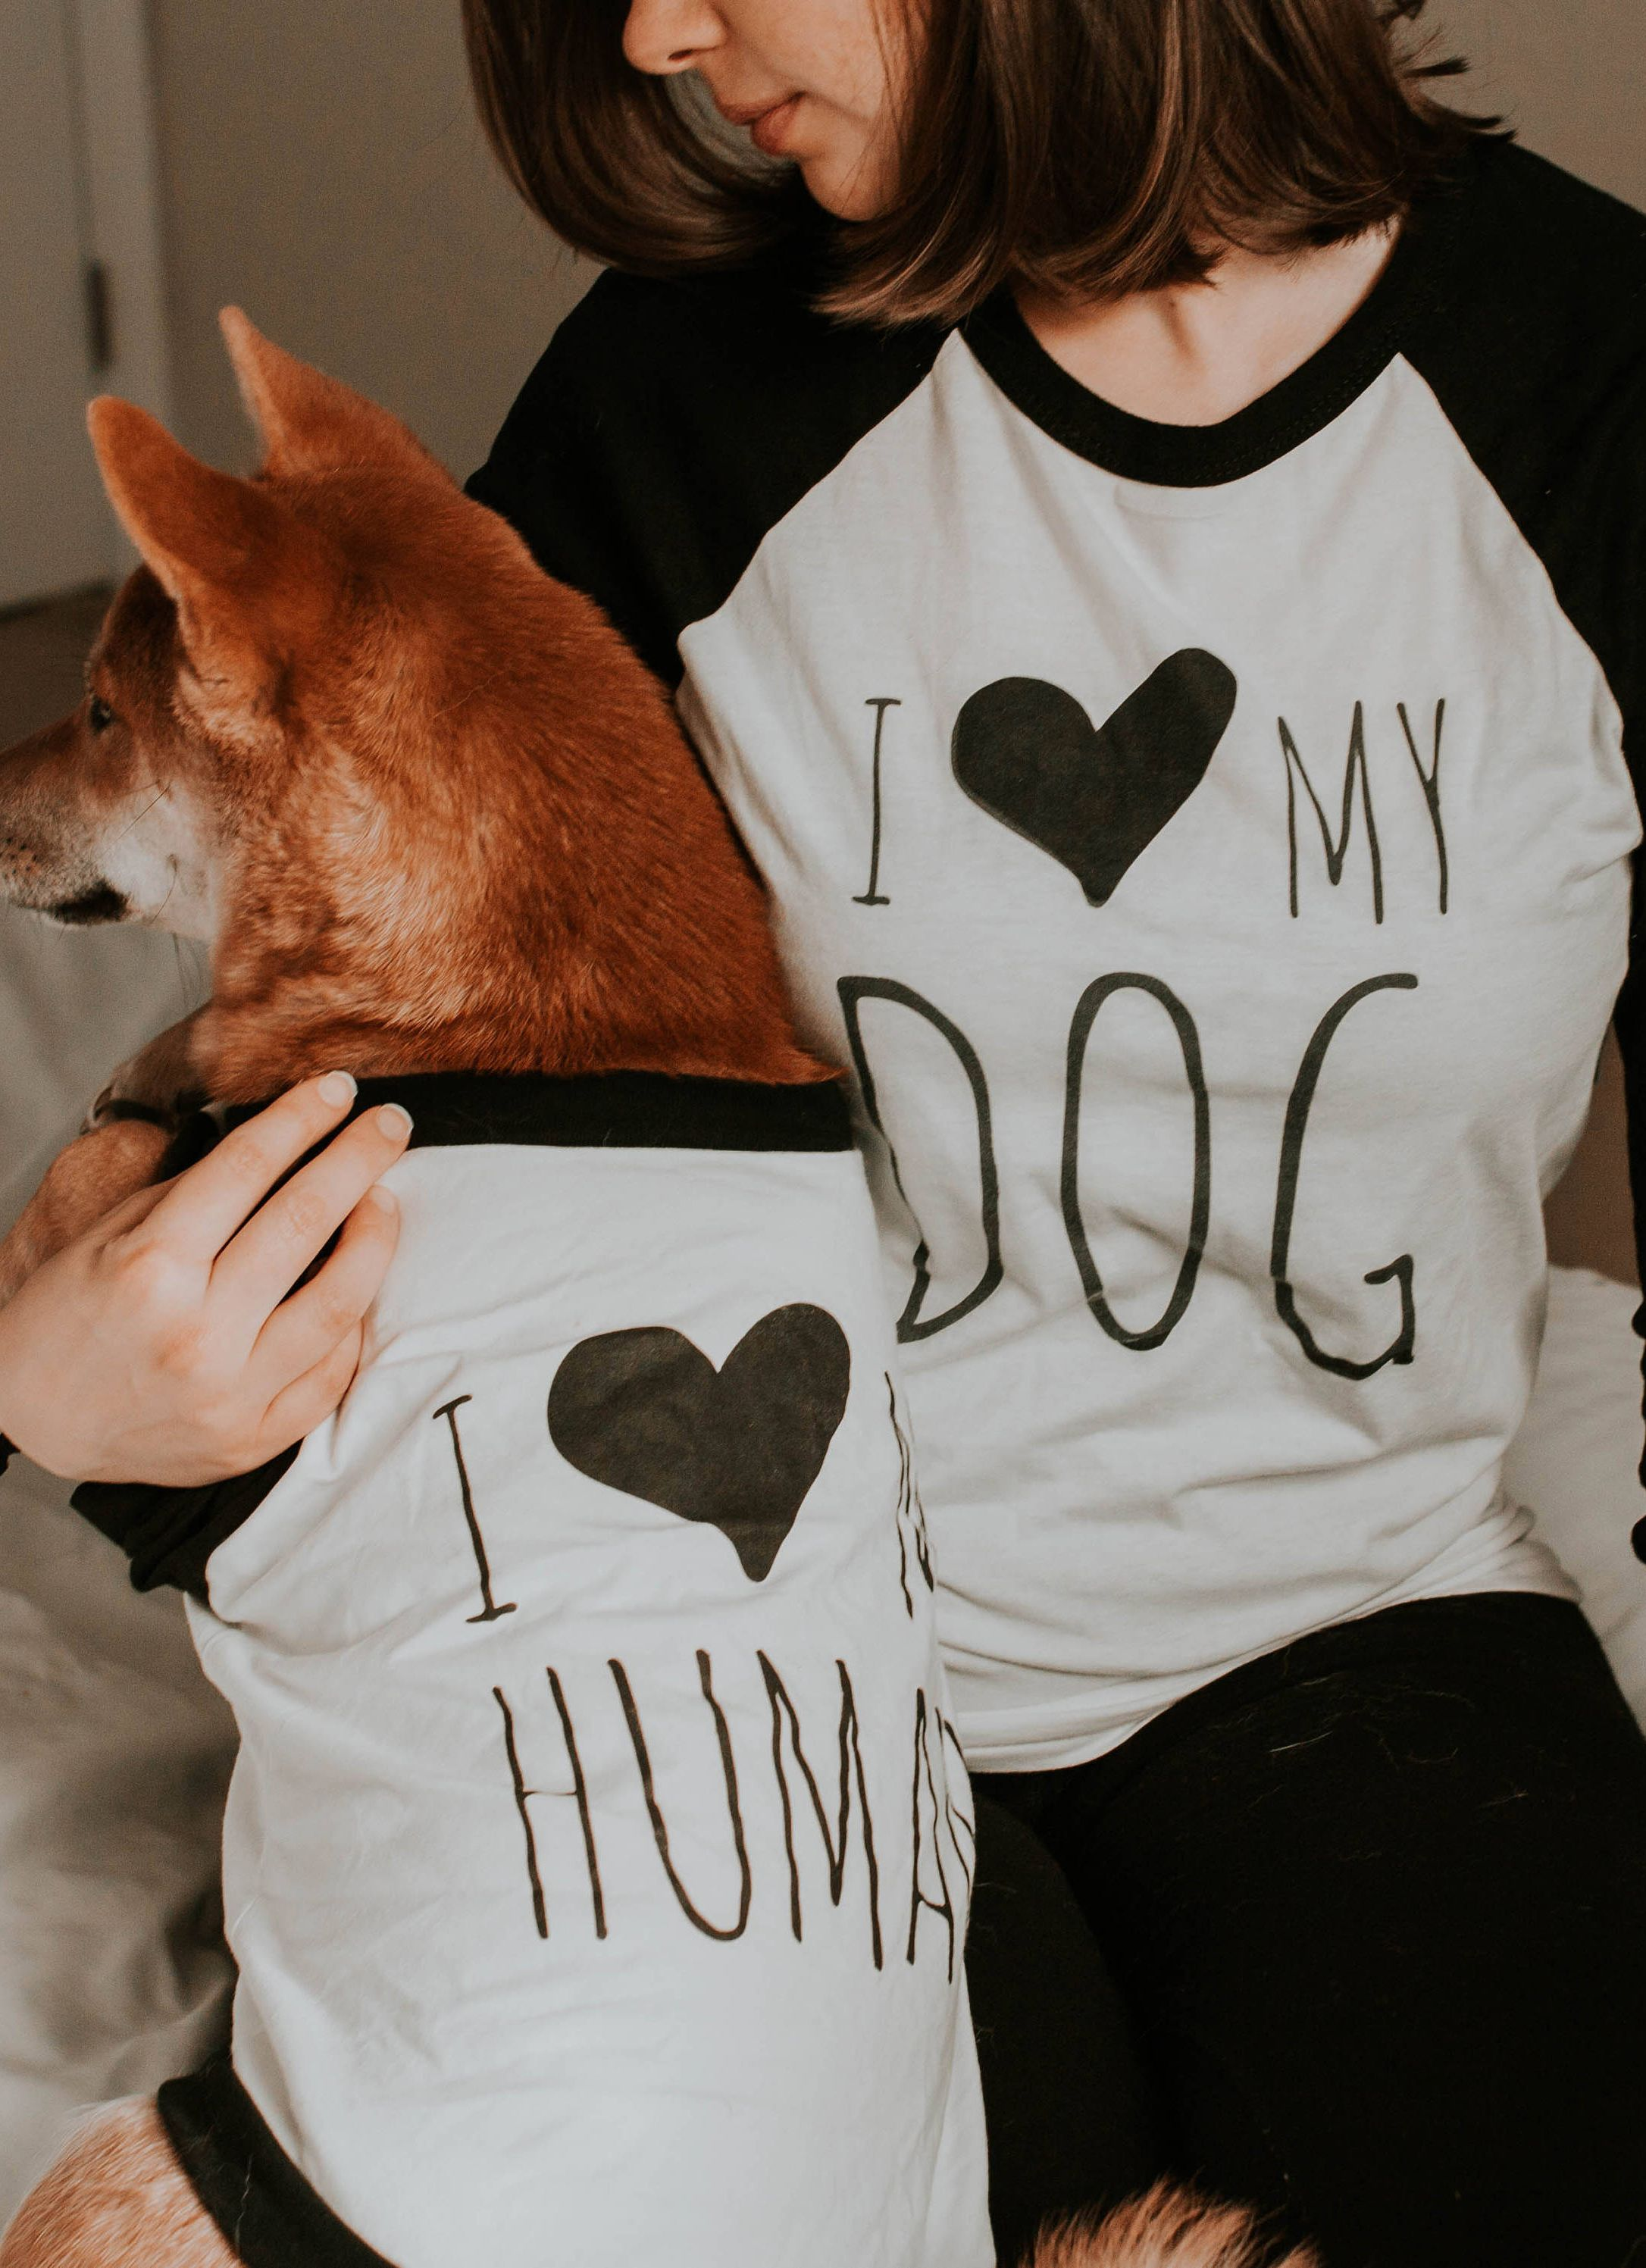 74197826577f I Love My Dog I Love My Human T-Shirt Set for Dog & Human | Unisex or Women's  Graphic Baseball Raglan Tee Shirt Set | Love My Dog Shirt Set